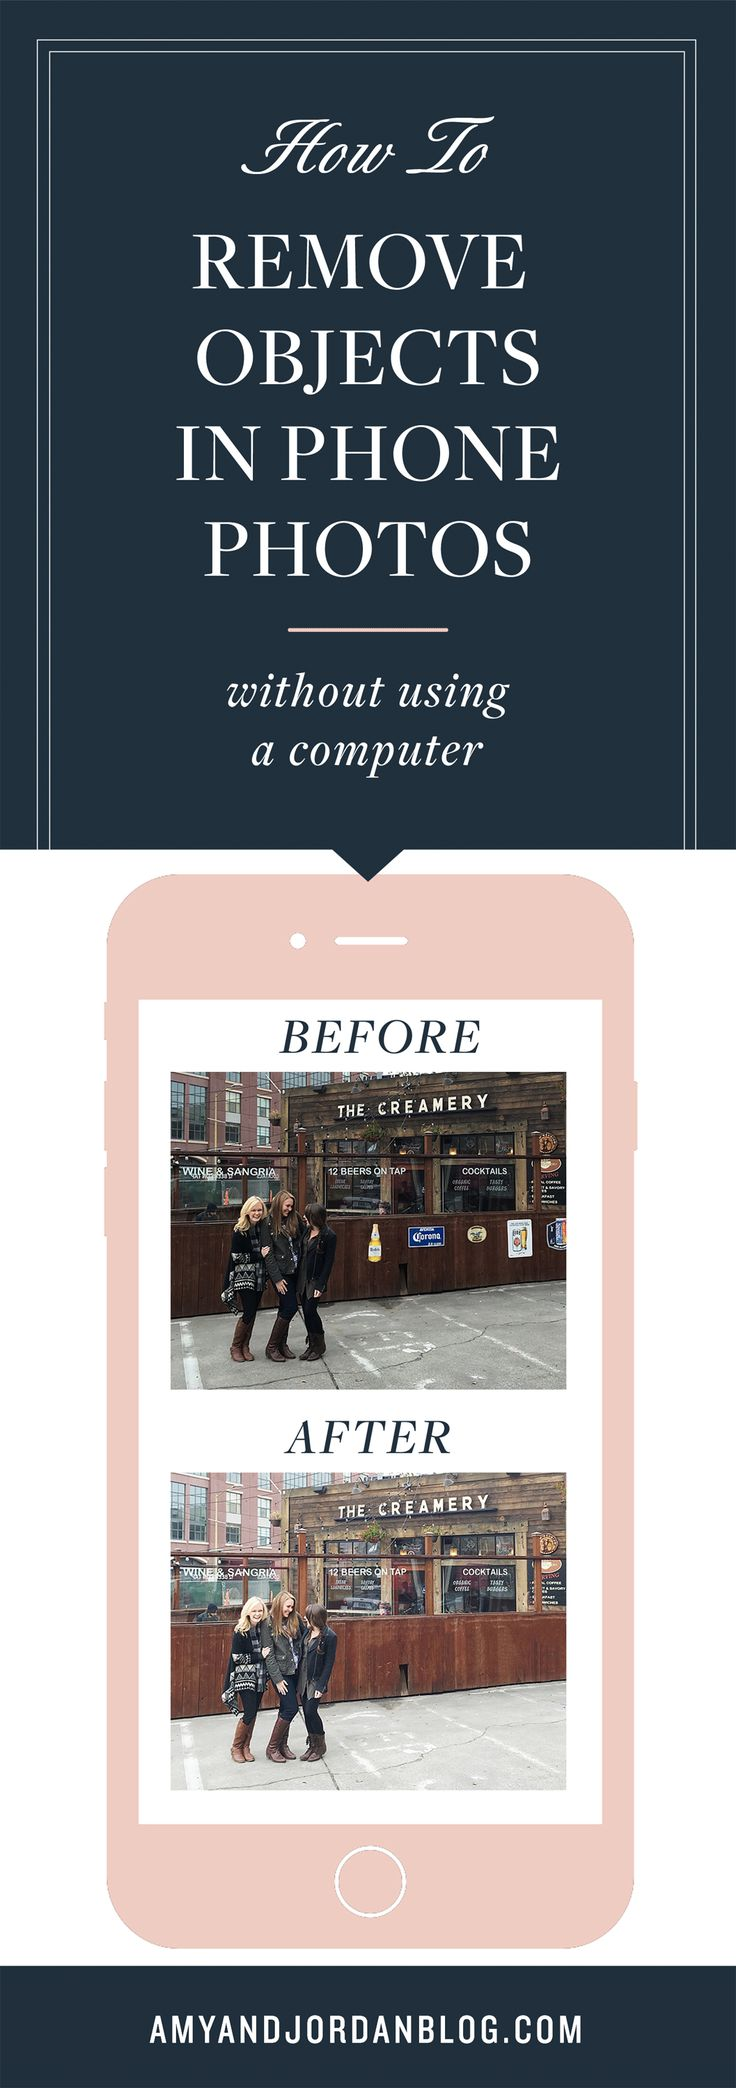 Sometimes we snap a photo we love from our phones, and there's something in it that's distracting our eye from appreciating the memory, but we still want to put it on Instagram. We'll teach you how to remove objects in phone photos without using a computer!